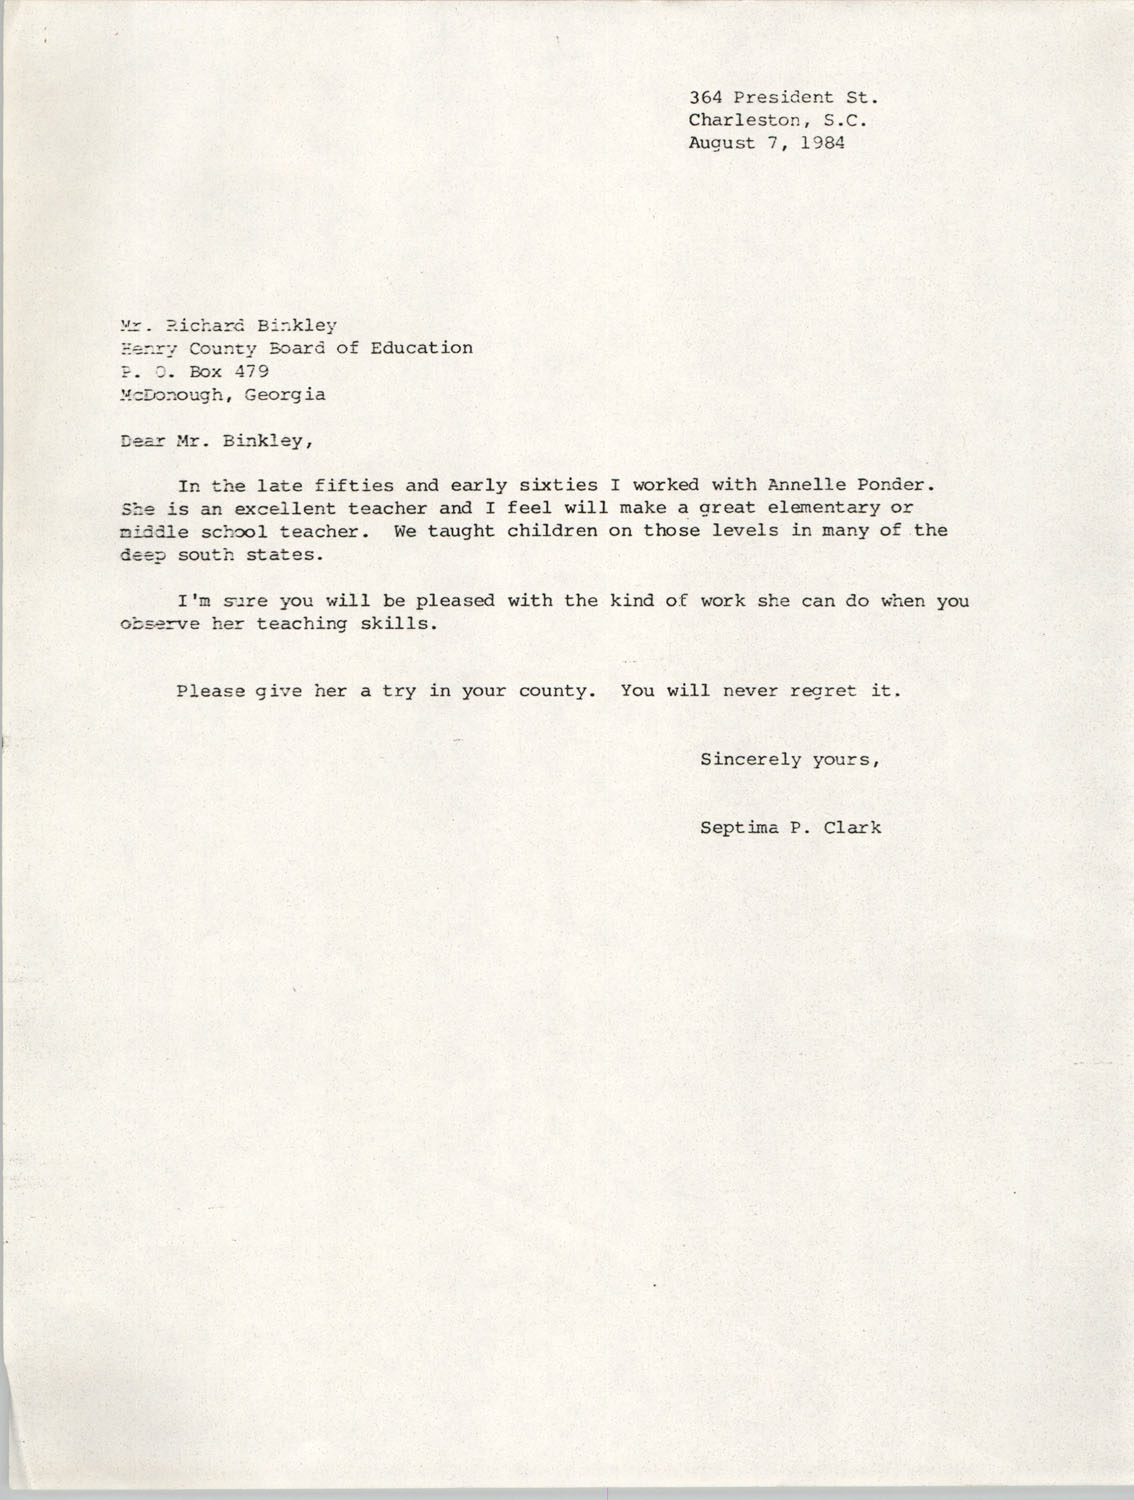 Letter from Septima P. Clark to Richard Binkley, August 7, 1984